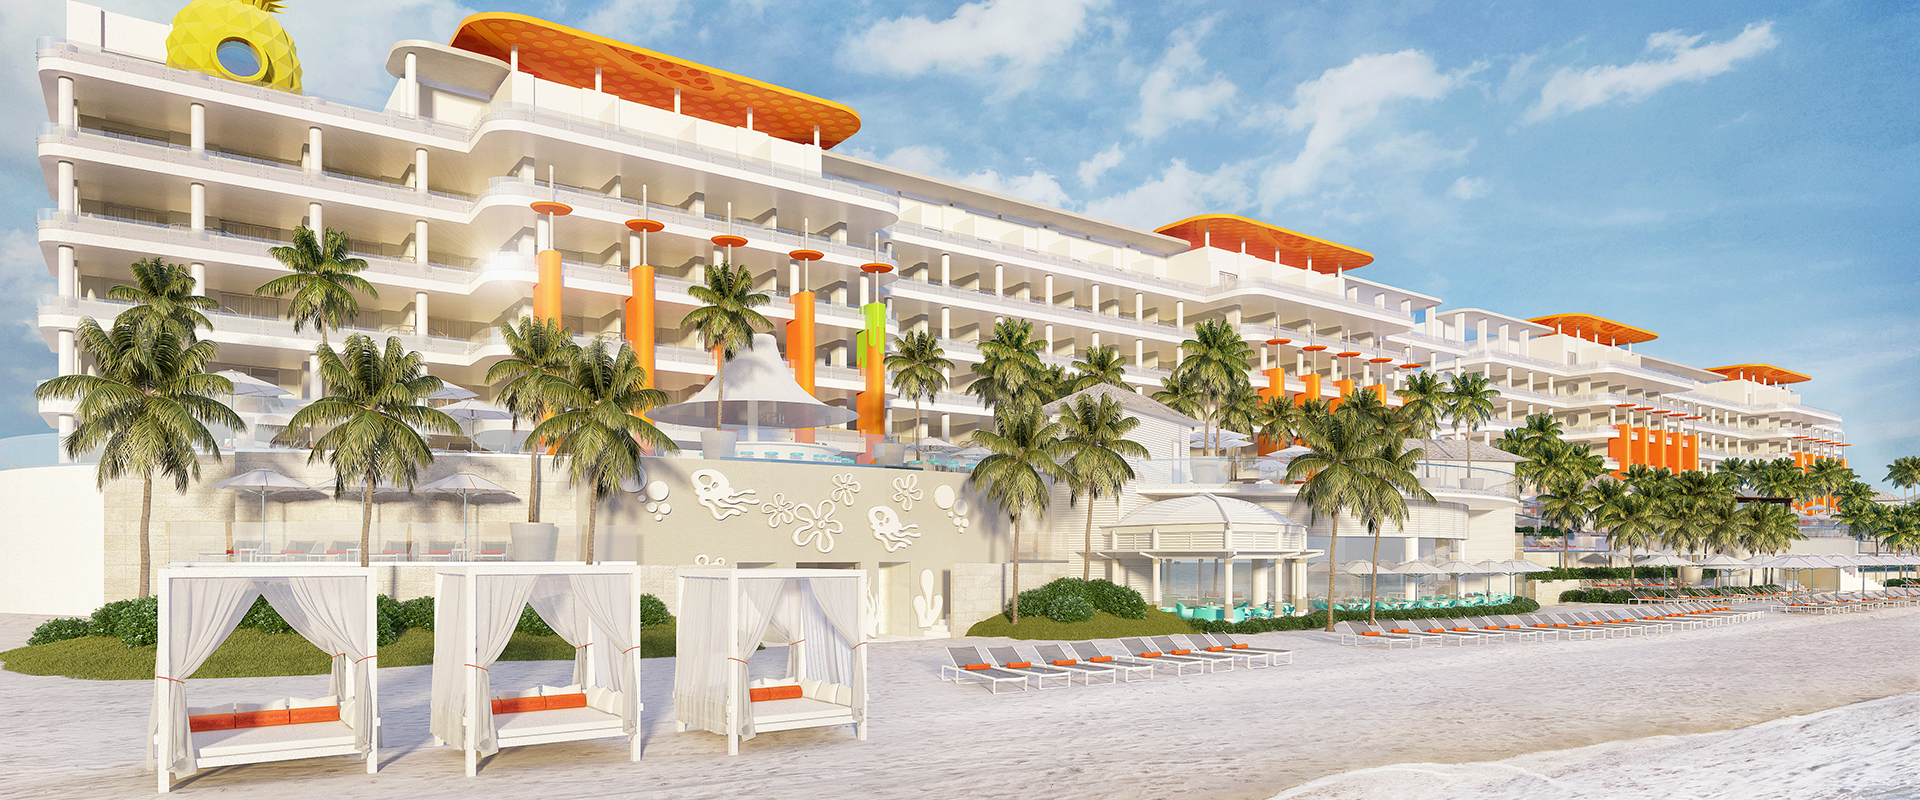 Nickelodeon Hotels & Resorts Riviera Maya opens in 2020.